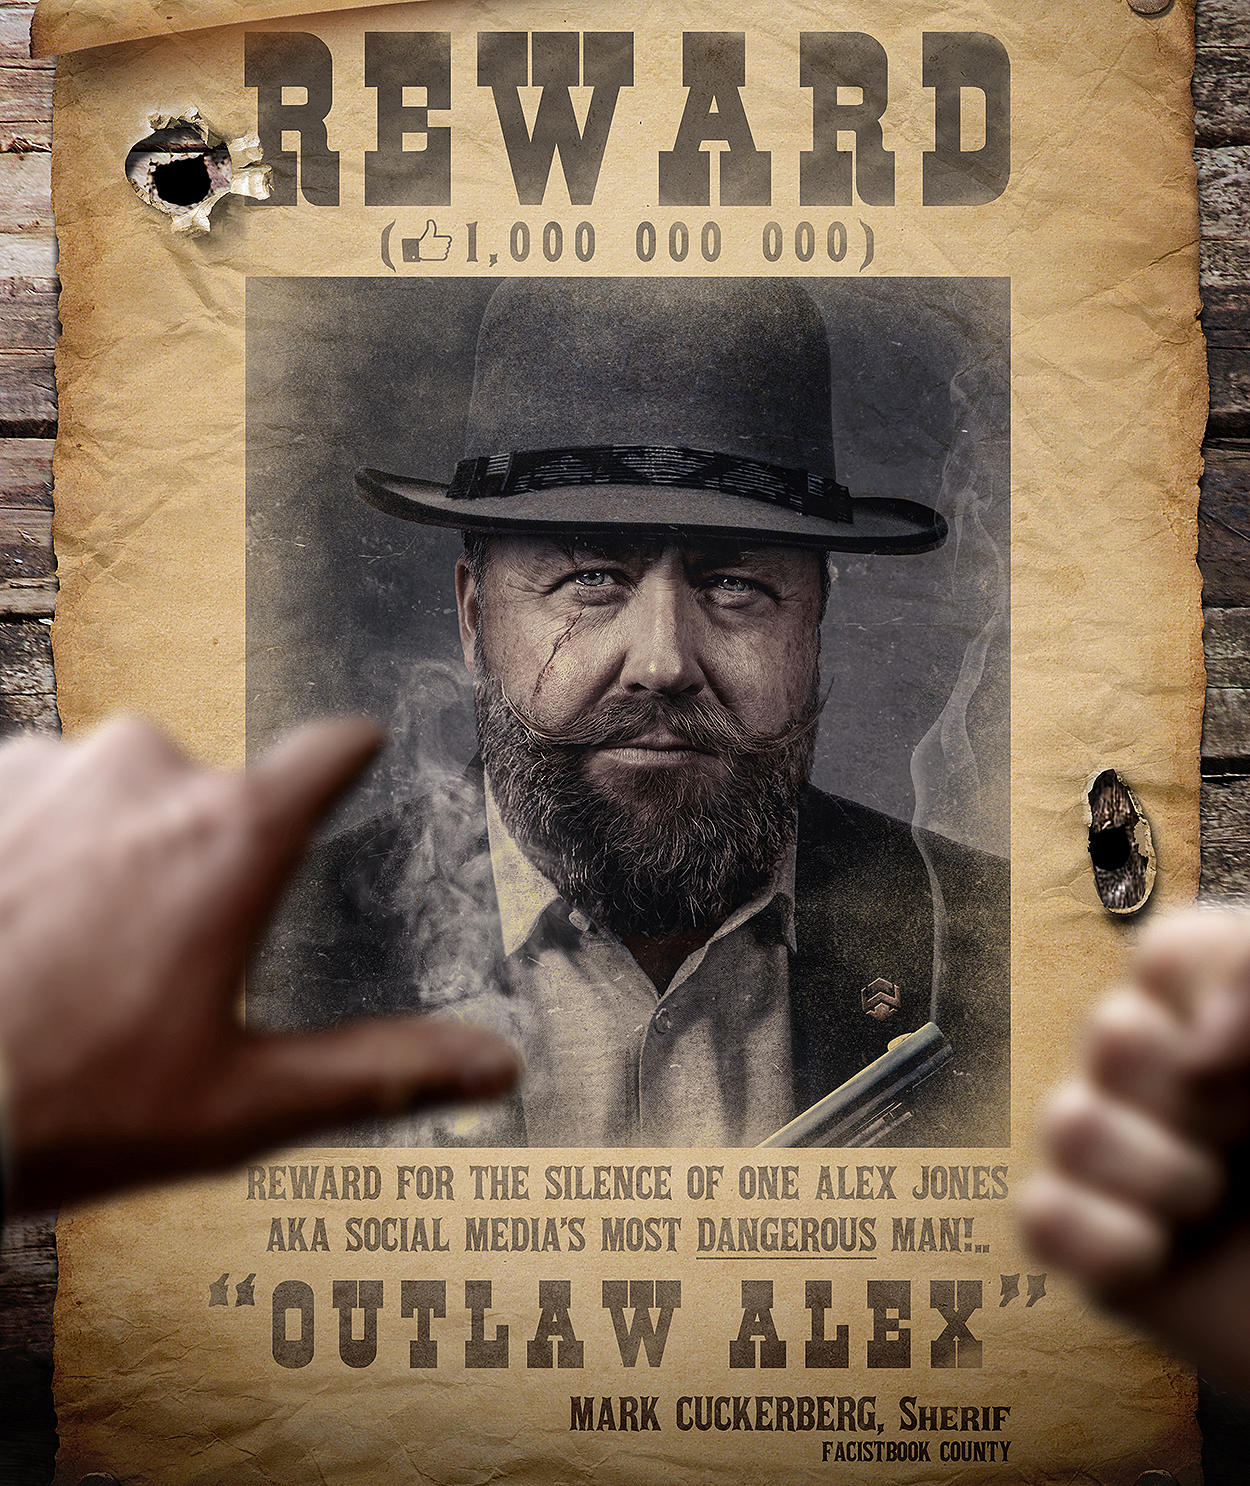 Amazing Art: Outlaw Alex Jones Wanted by Sheriff Mark Cuckerberg